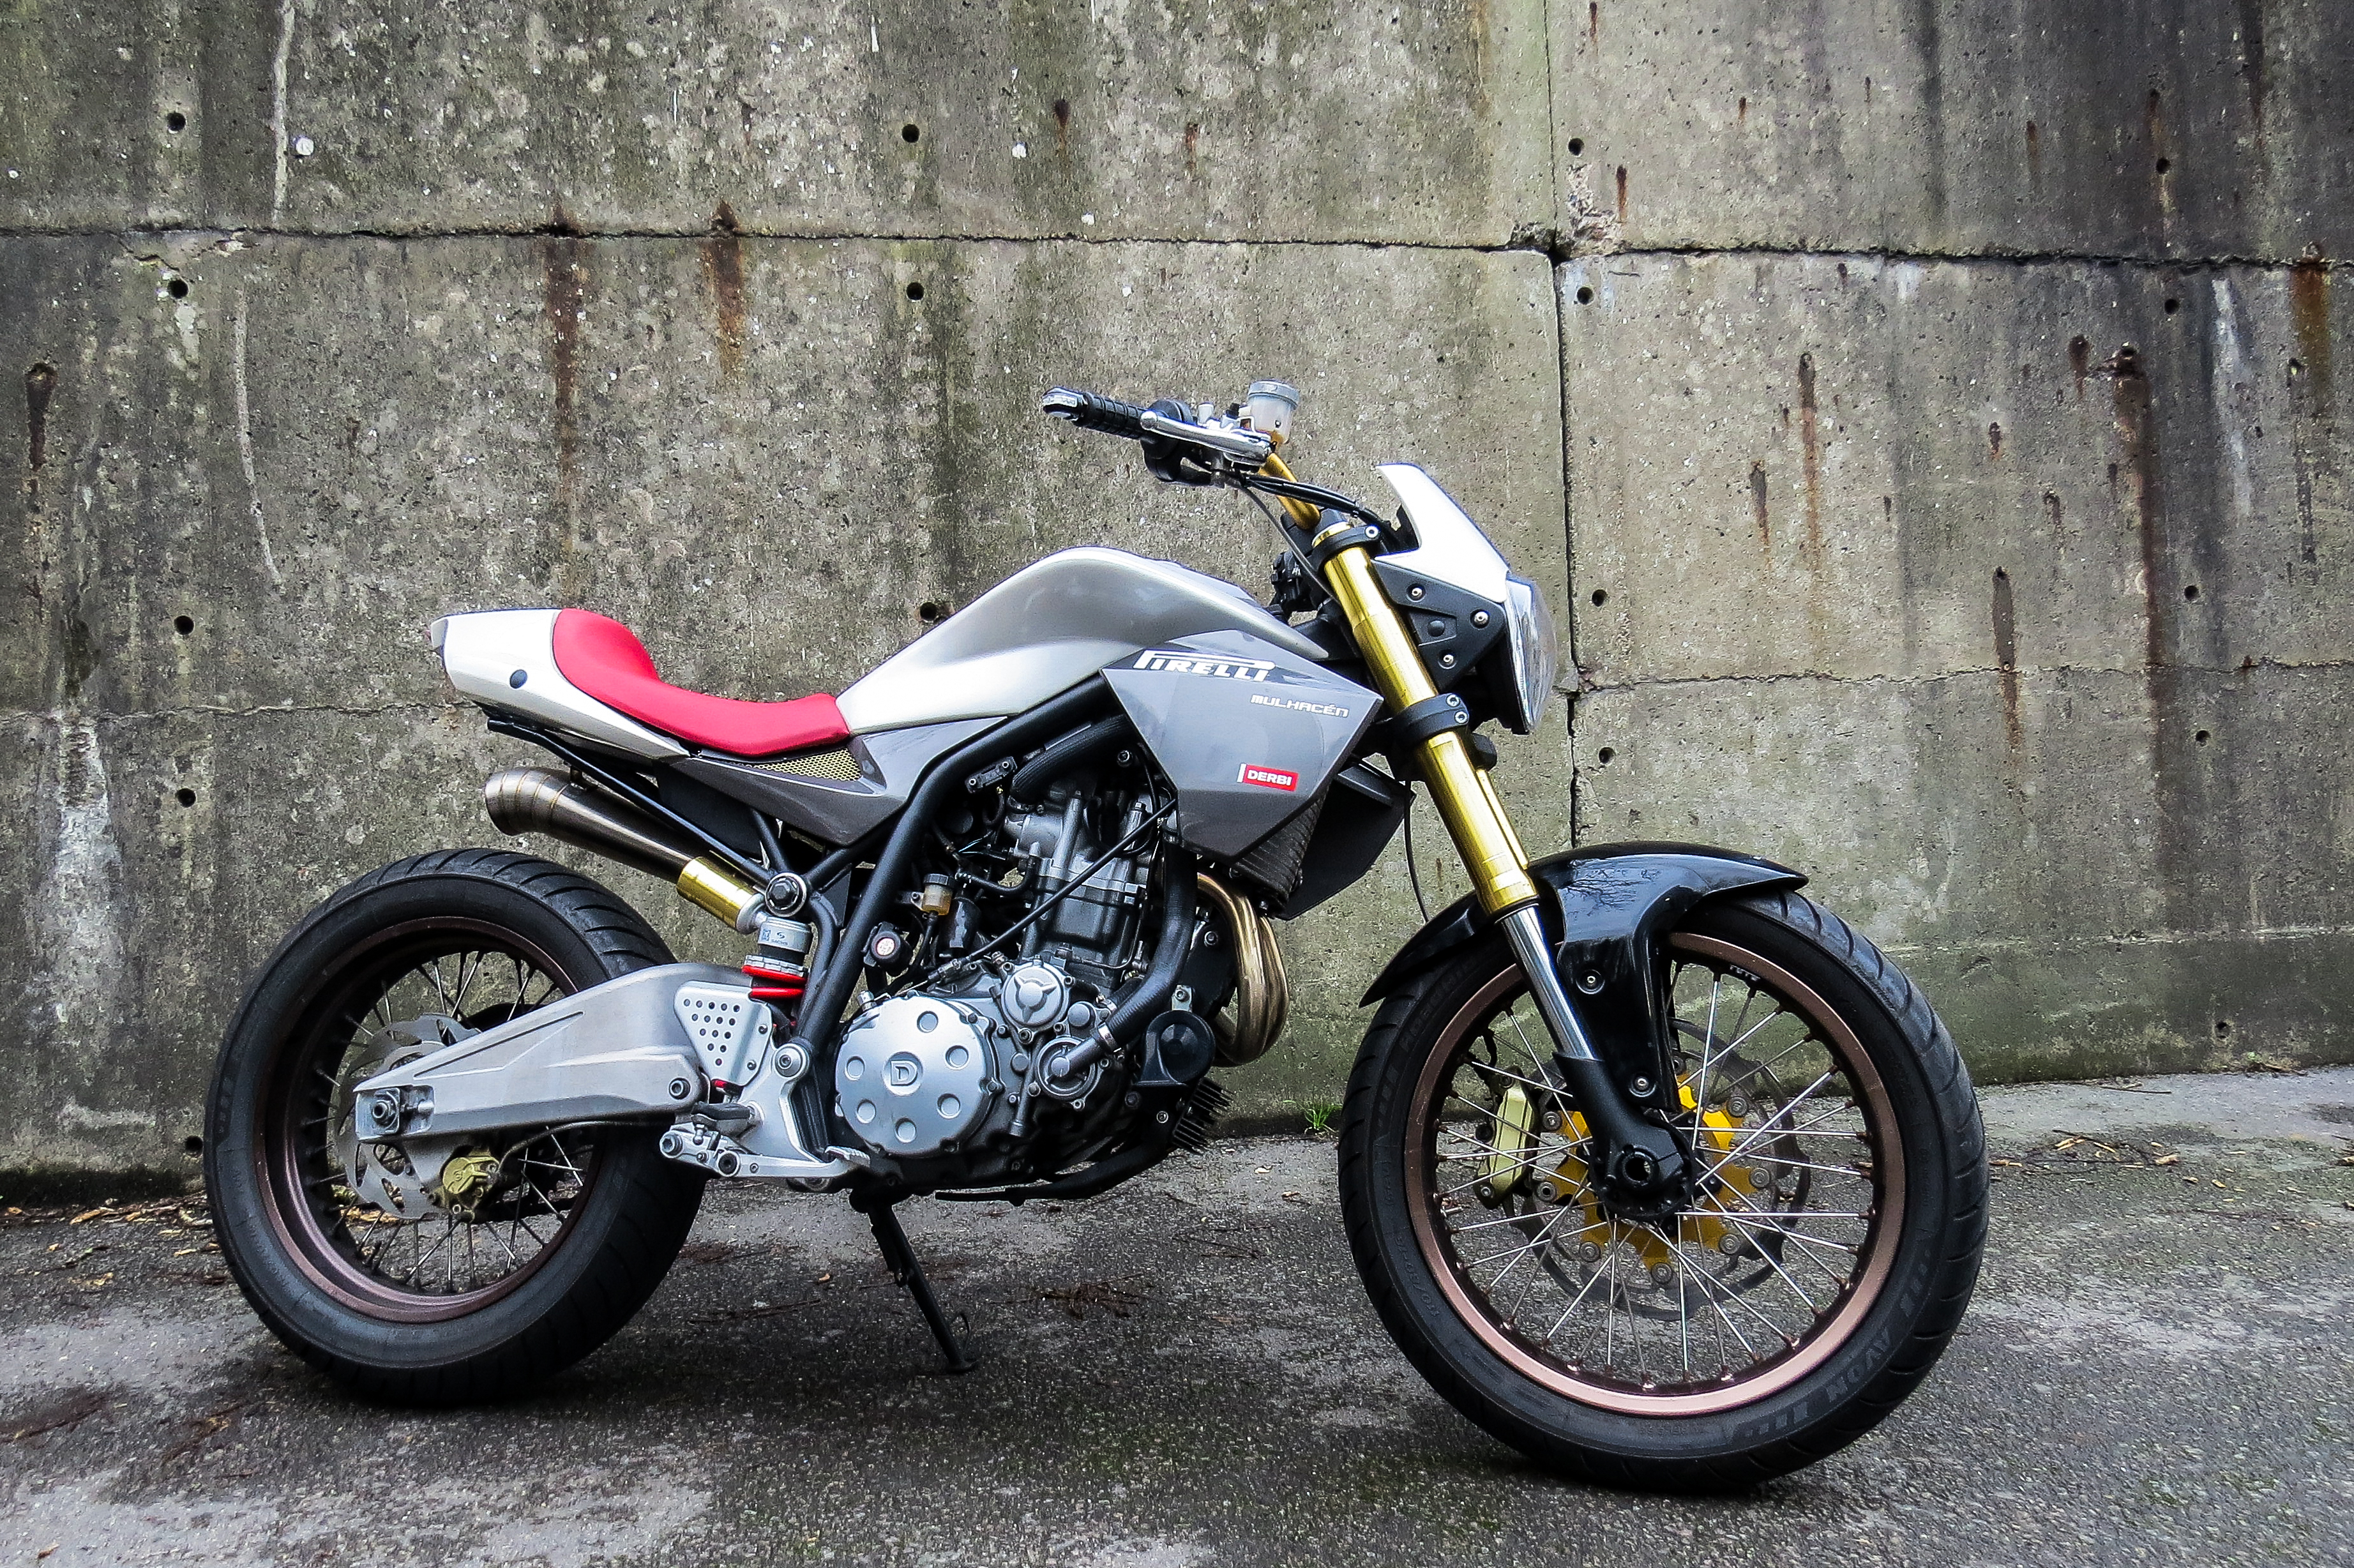 Derbi Mulhacen 659 project